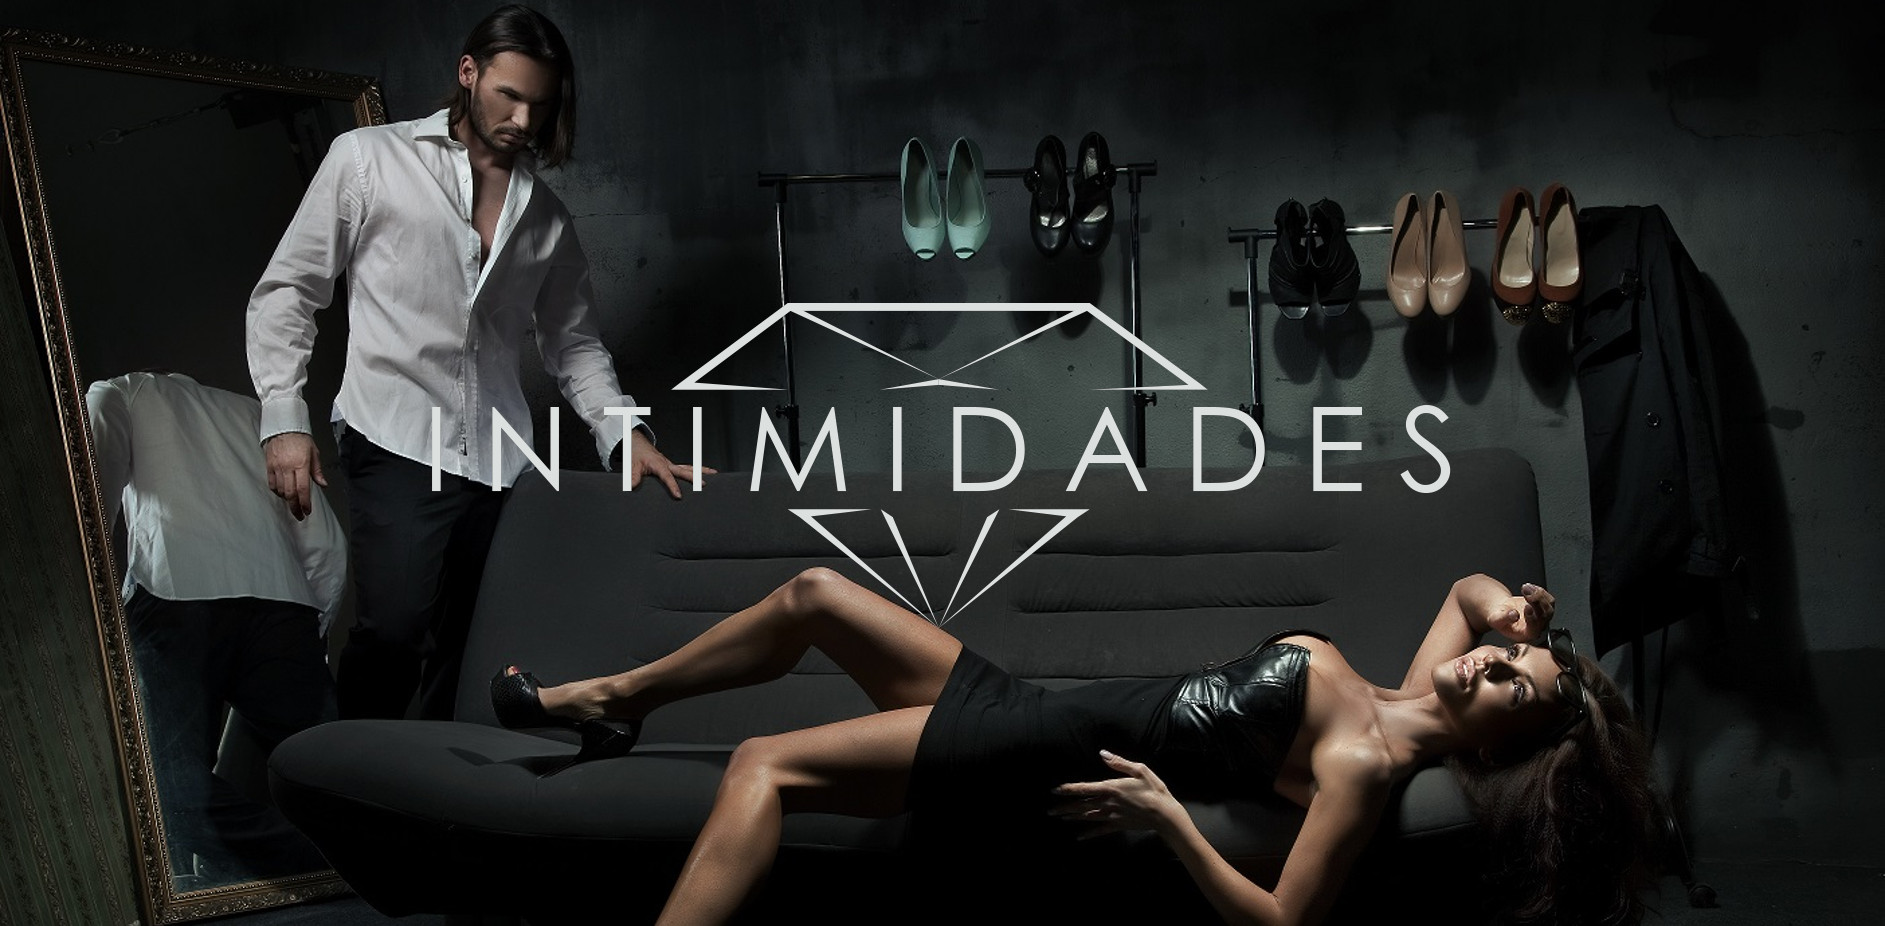 INtimidades swing club - Something more than a club!